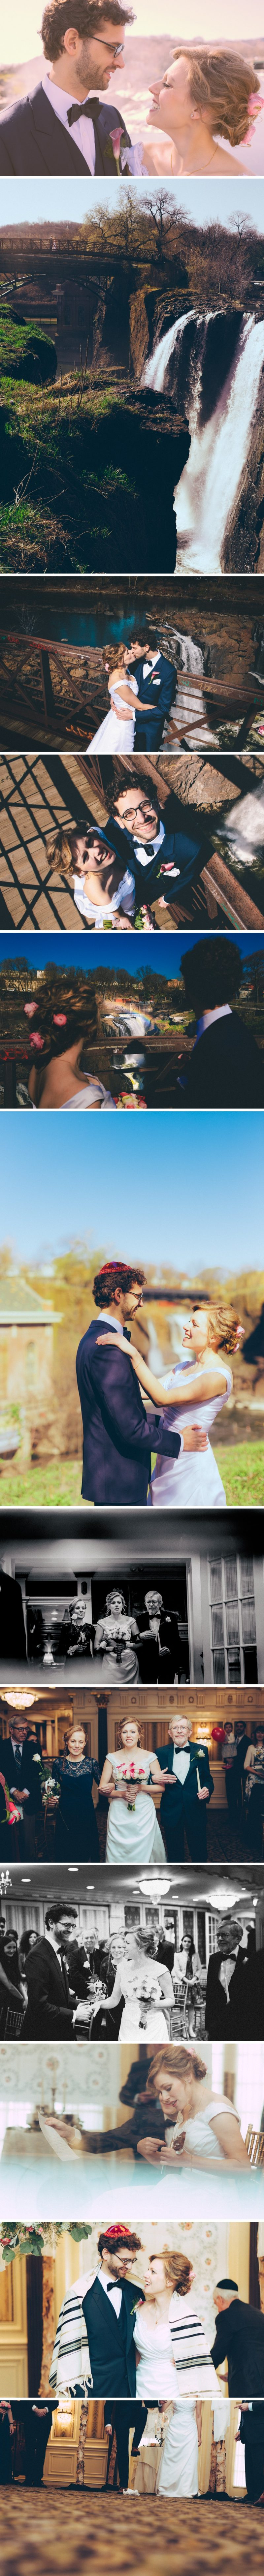 Wedding at The Brownstone in Paterson, New Jersey